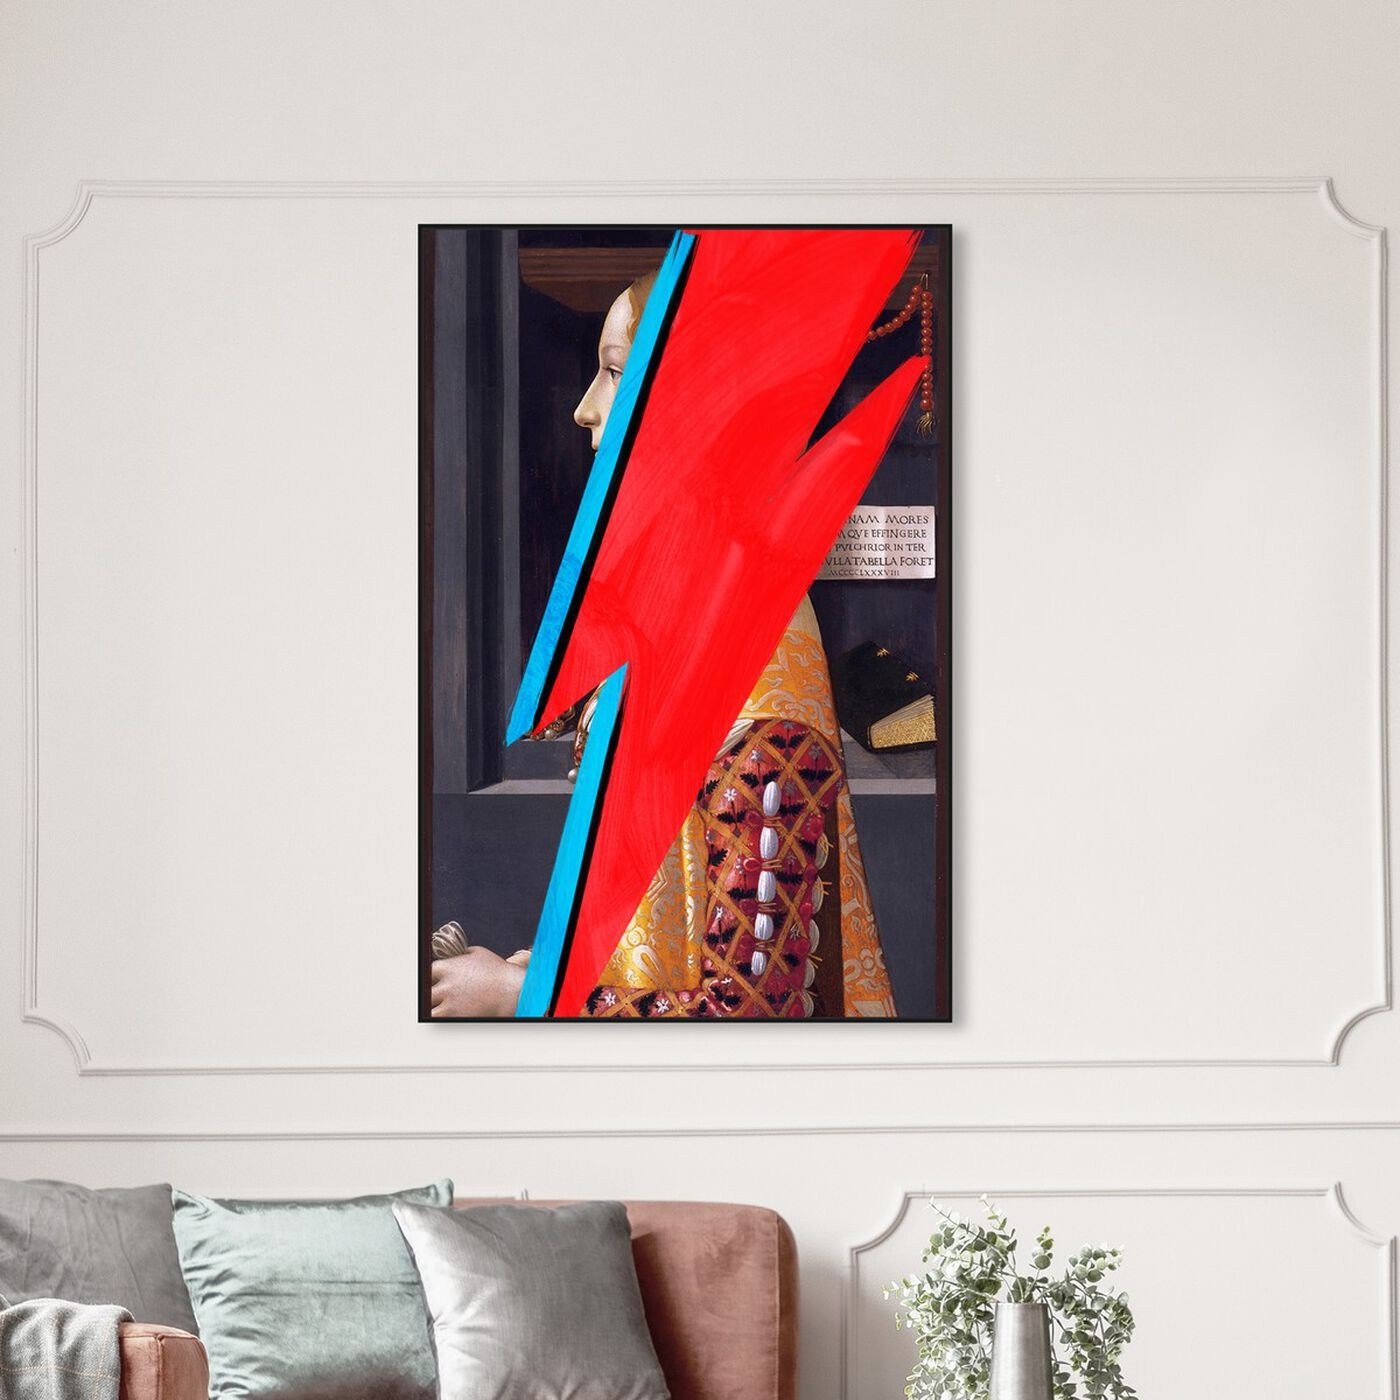 Hanging view of Ziggy featuring classic and figurative and classical figures art.